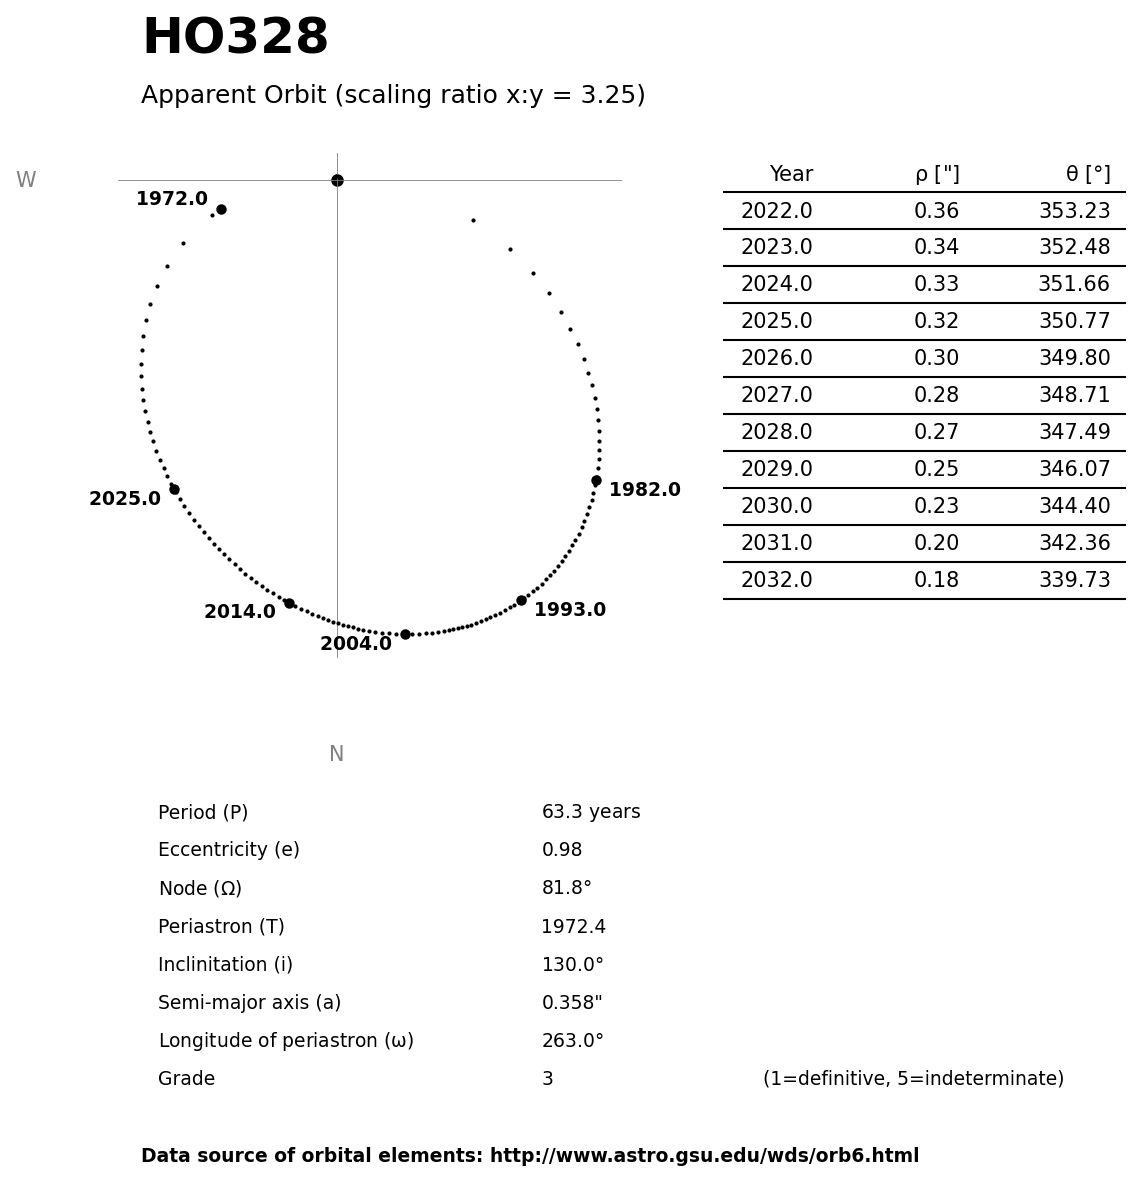 ../images/binary-star-orbits/HO328-orbit.jpg